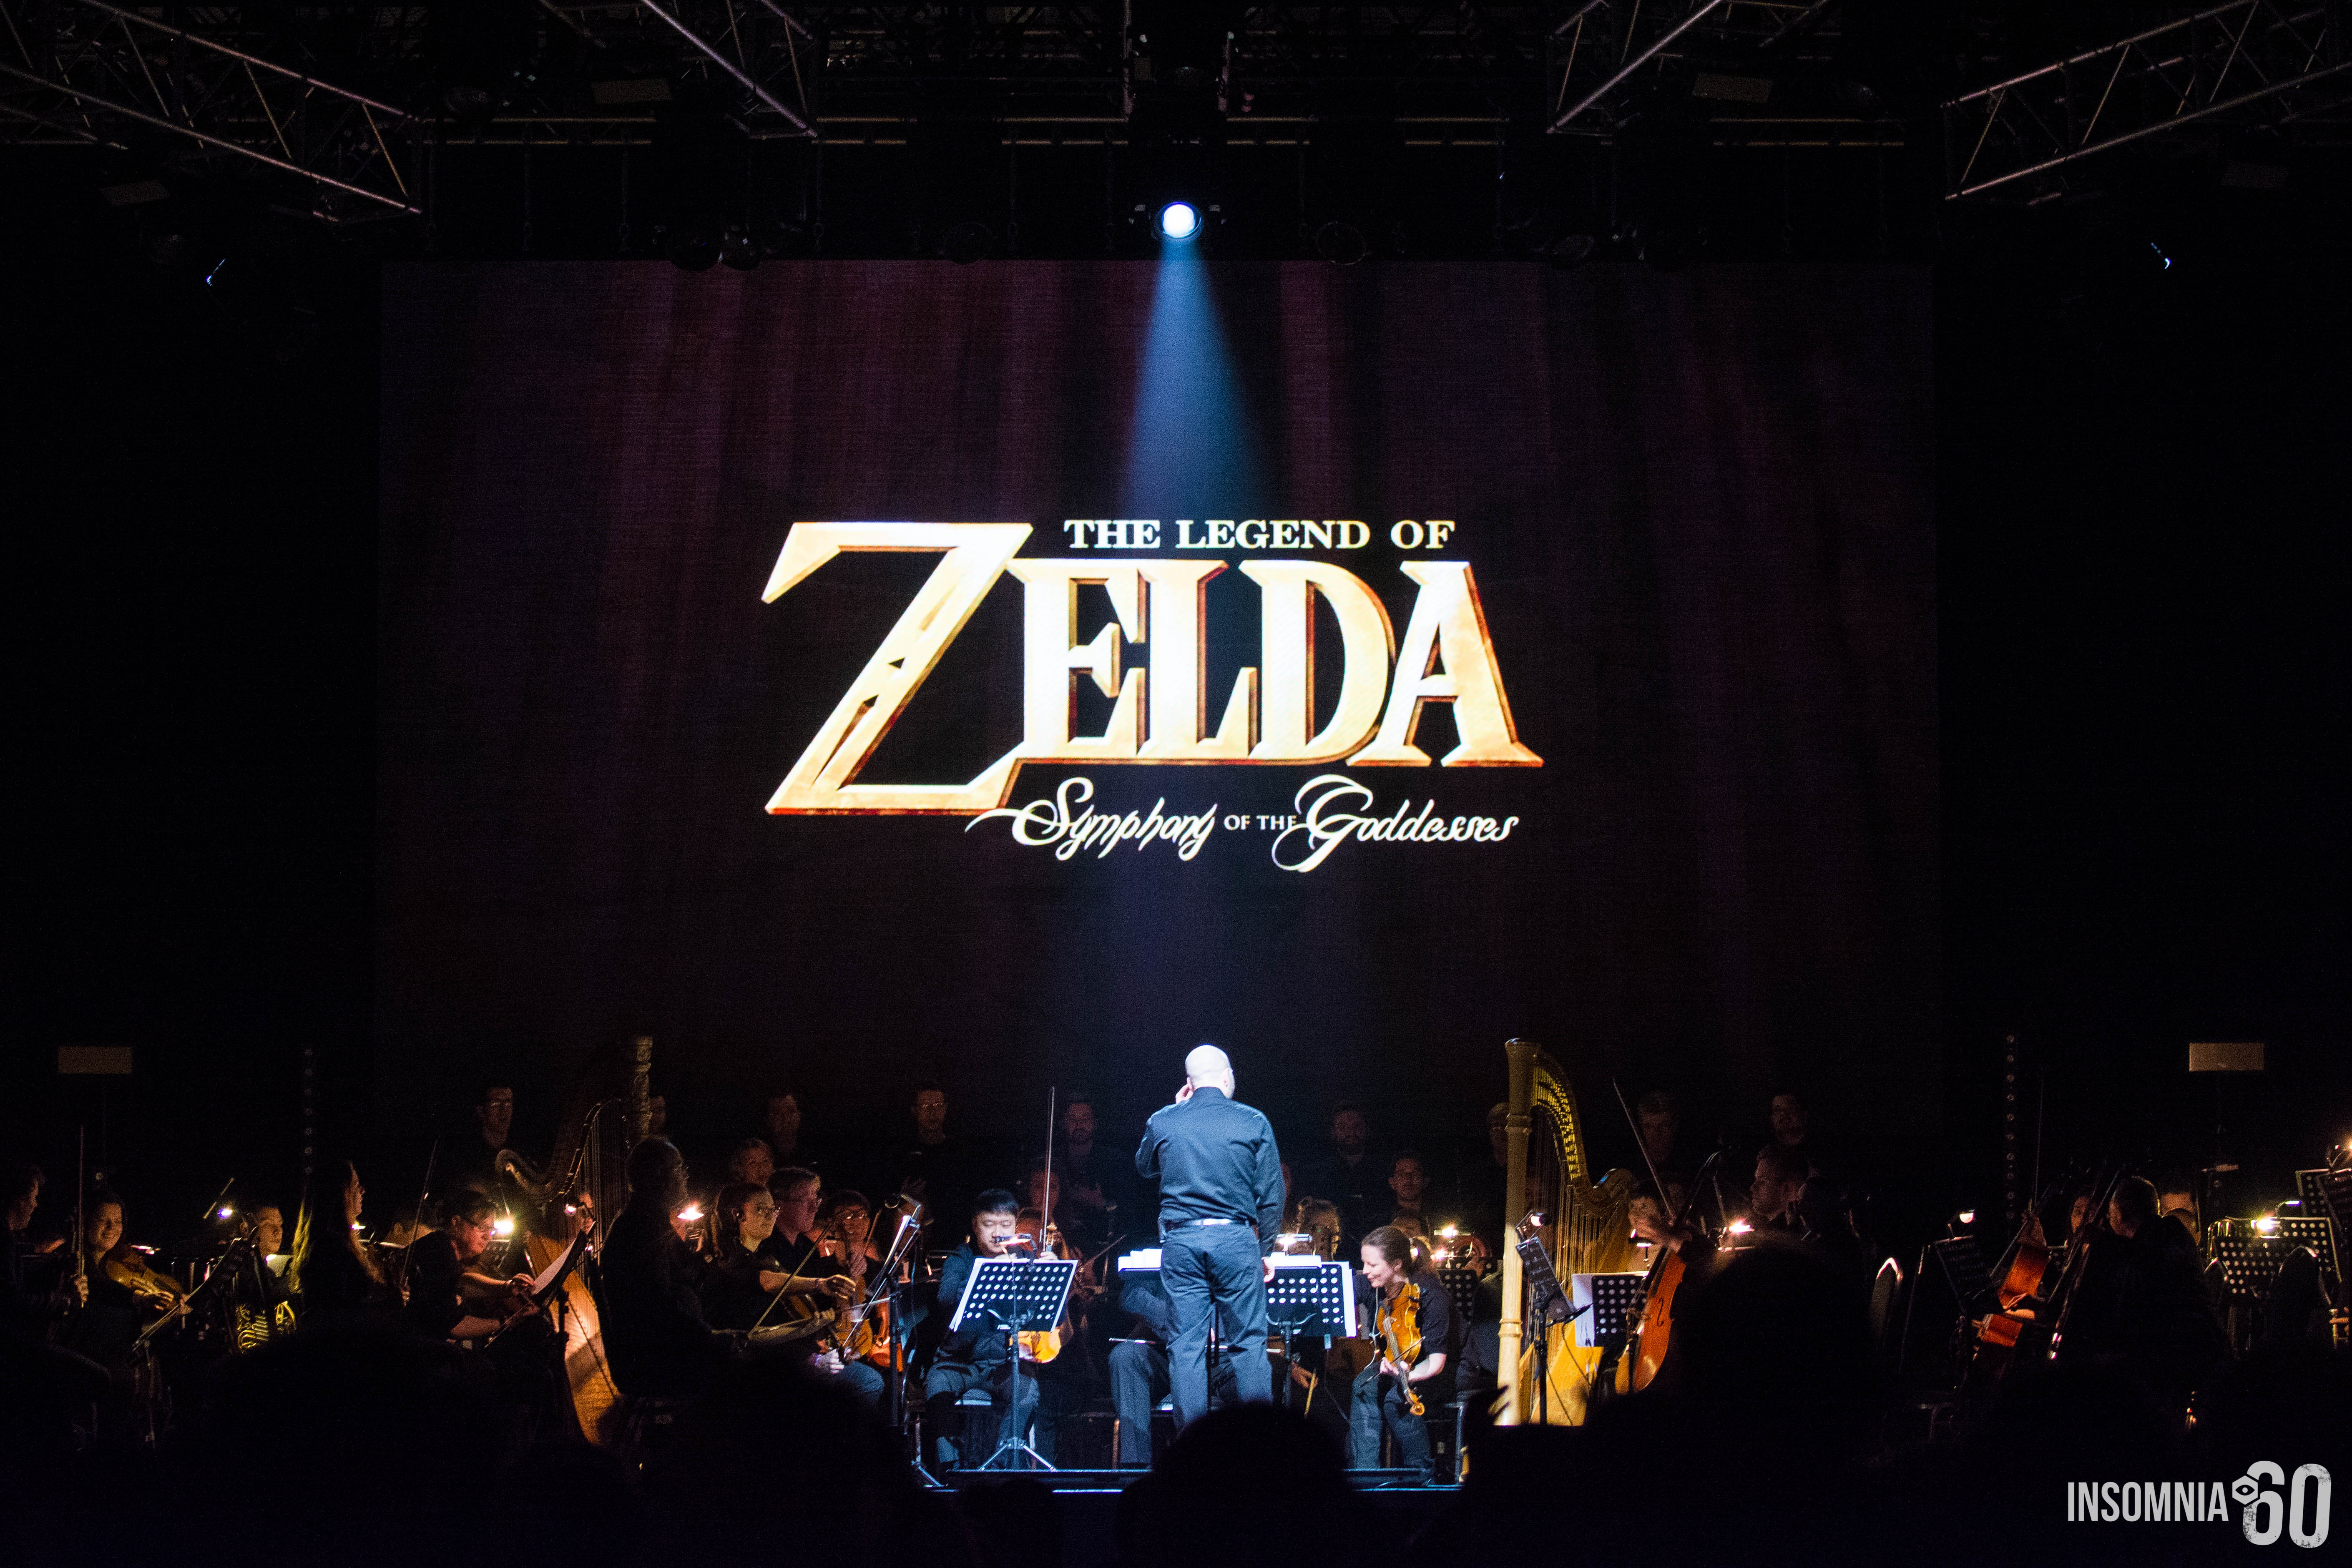 Are you ready for The Legend of Zelda - Symphony of the Goddesses